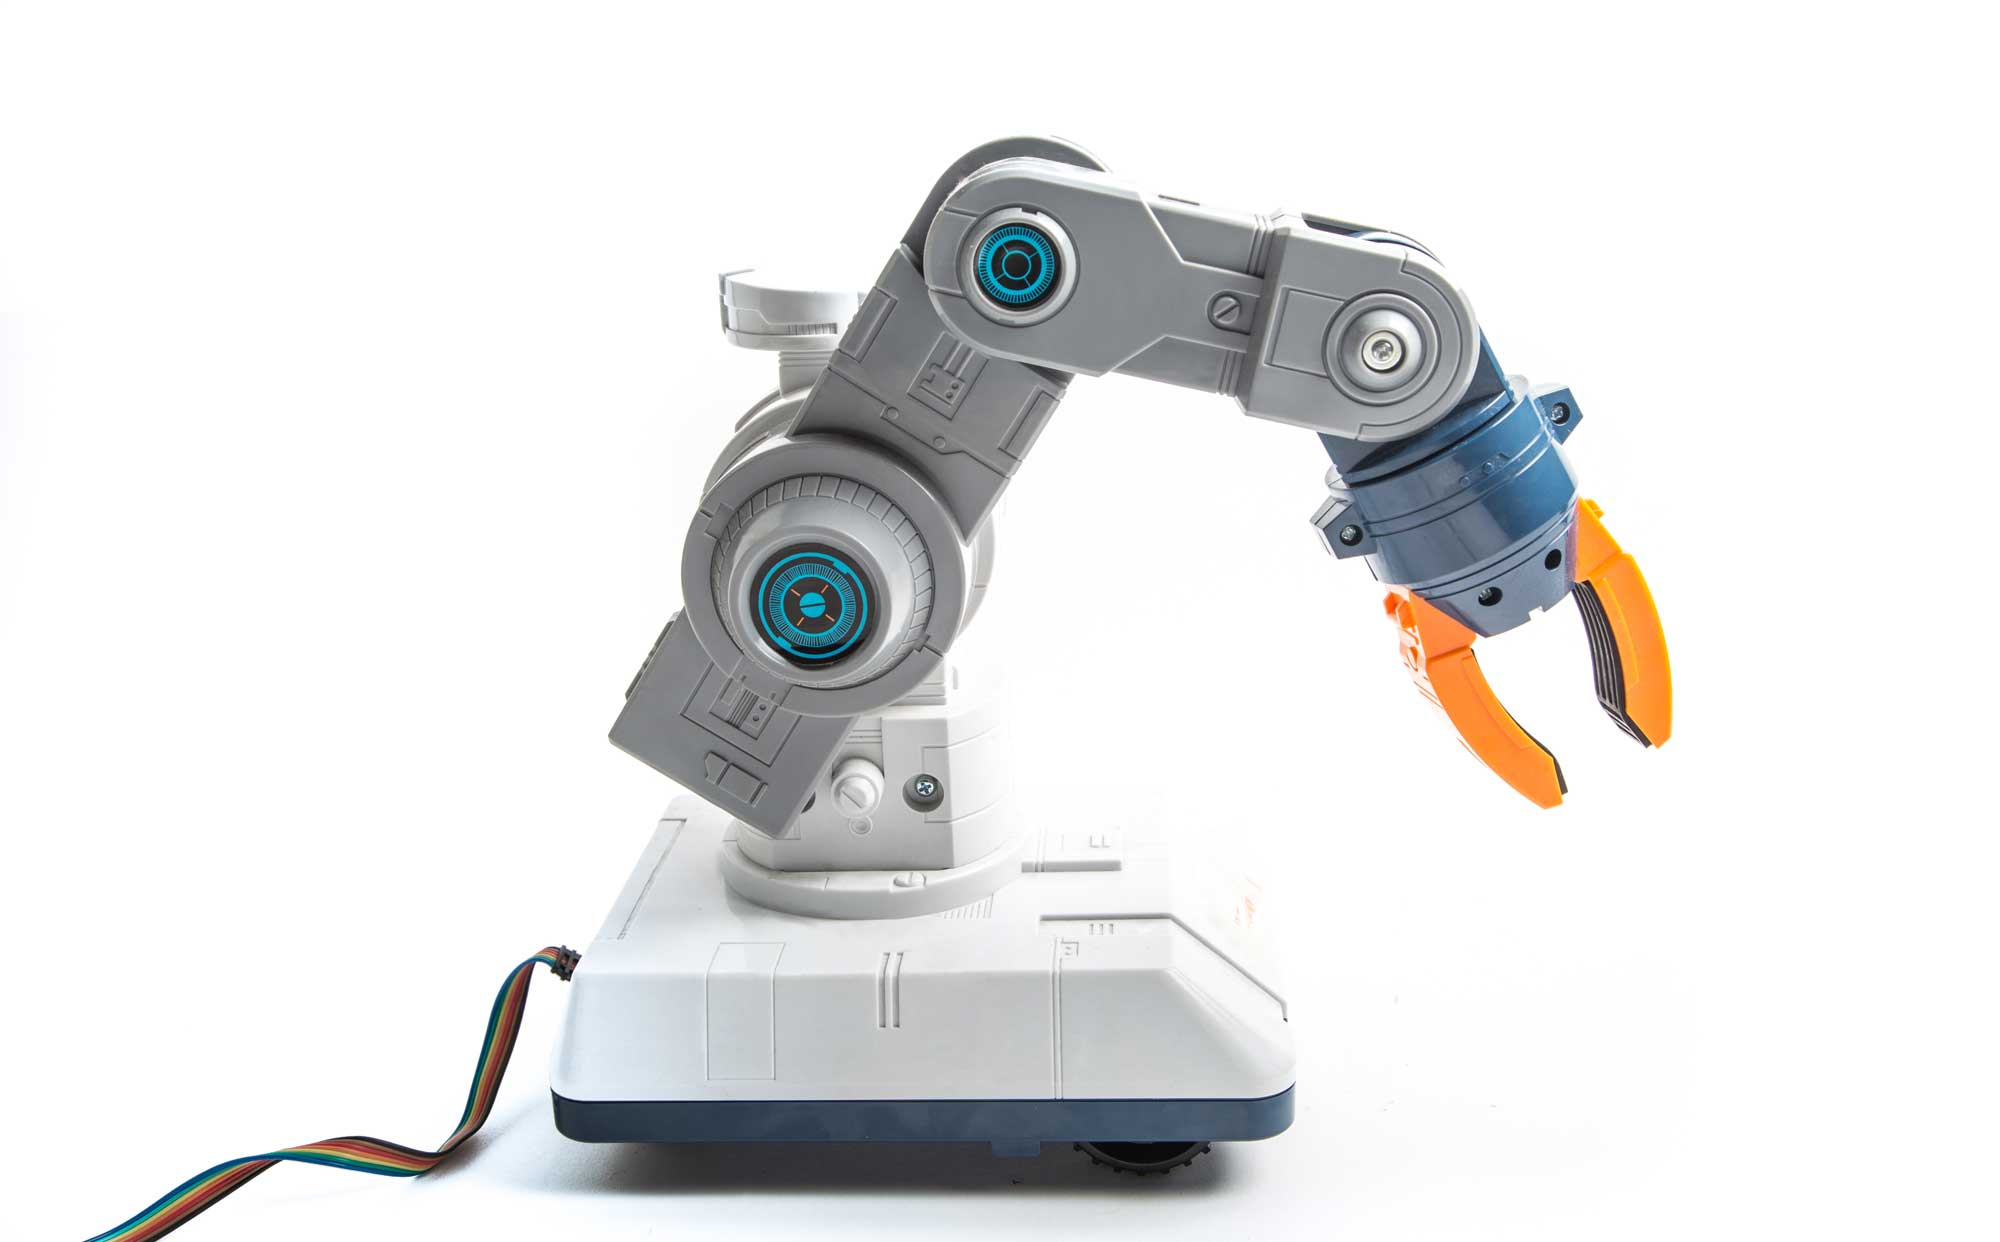 Program with Robot Operating System for Smooth Servo Movement